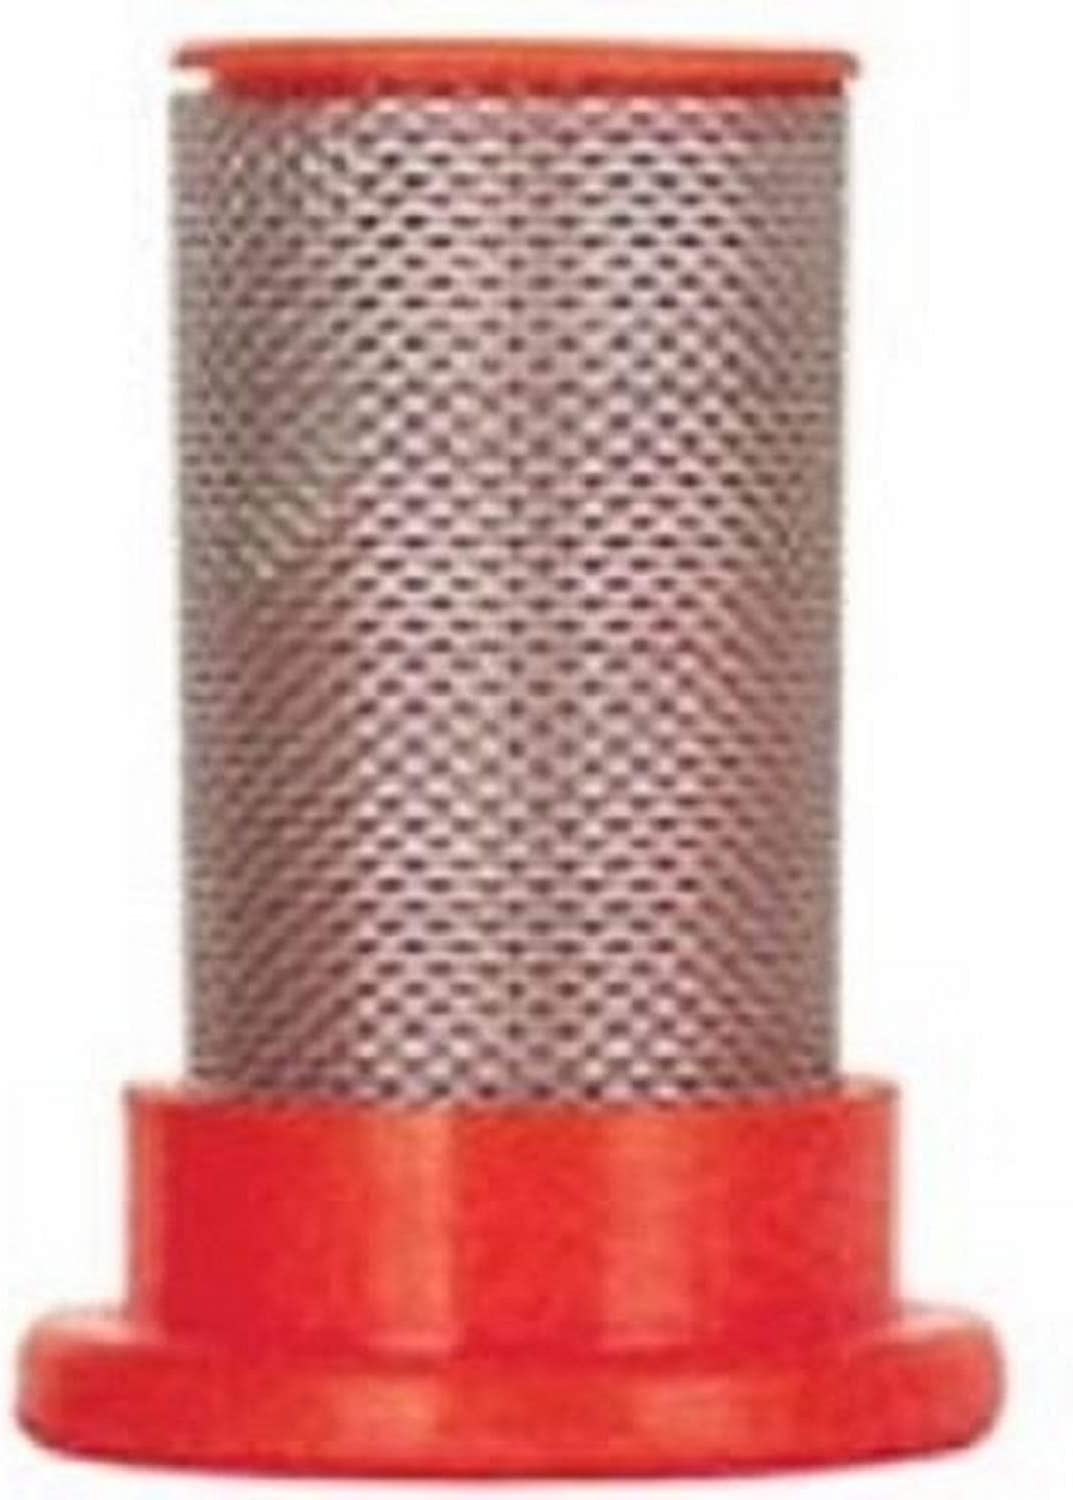 Valley Industries NS-50-CSK 50 Mesh Replacement Broadcast Sprayer Nozzle Strainer-50 4 Pack Red